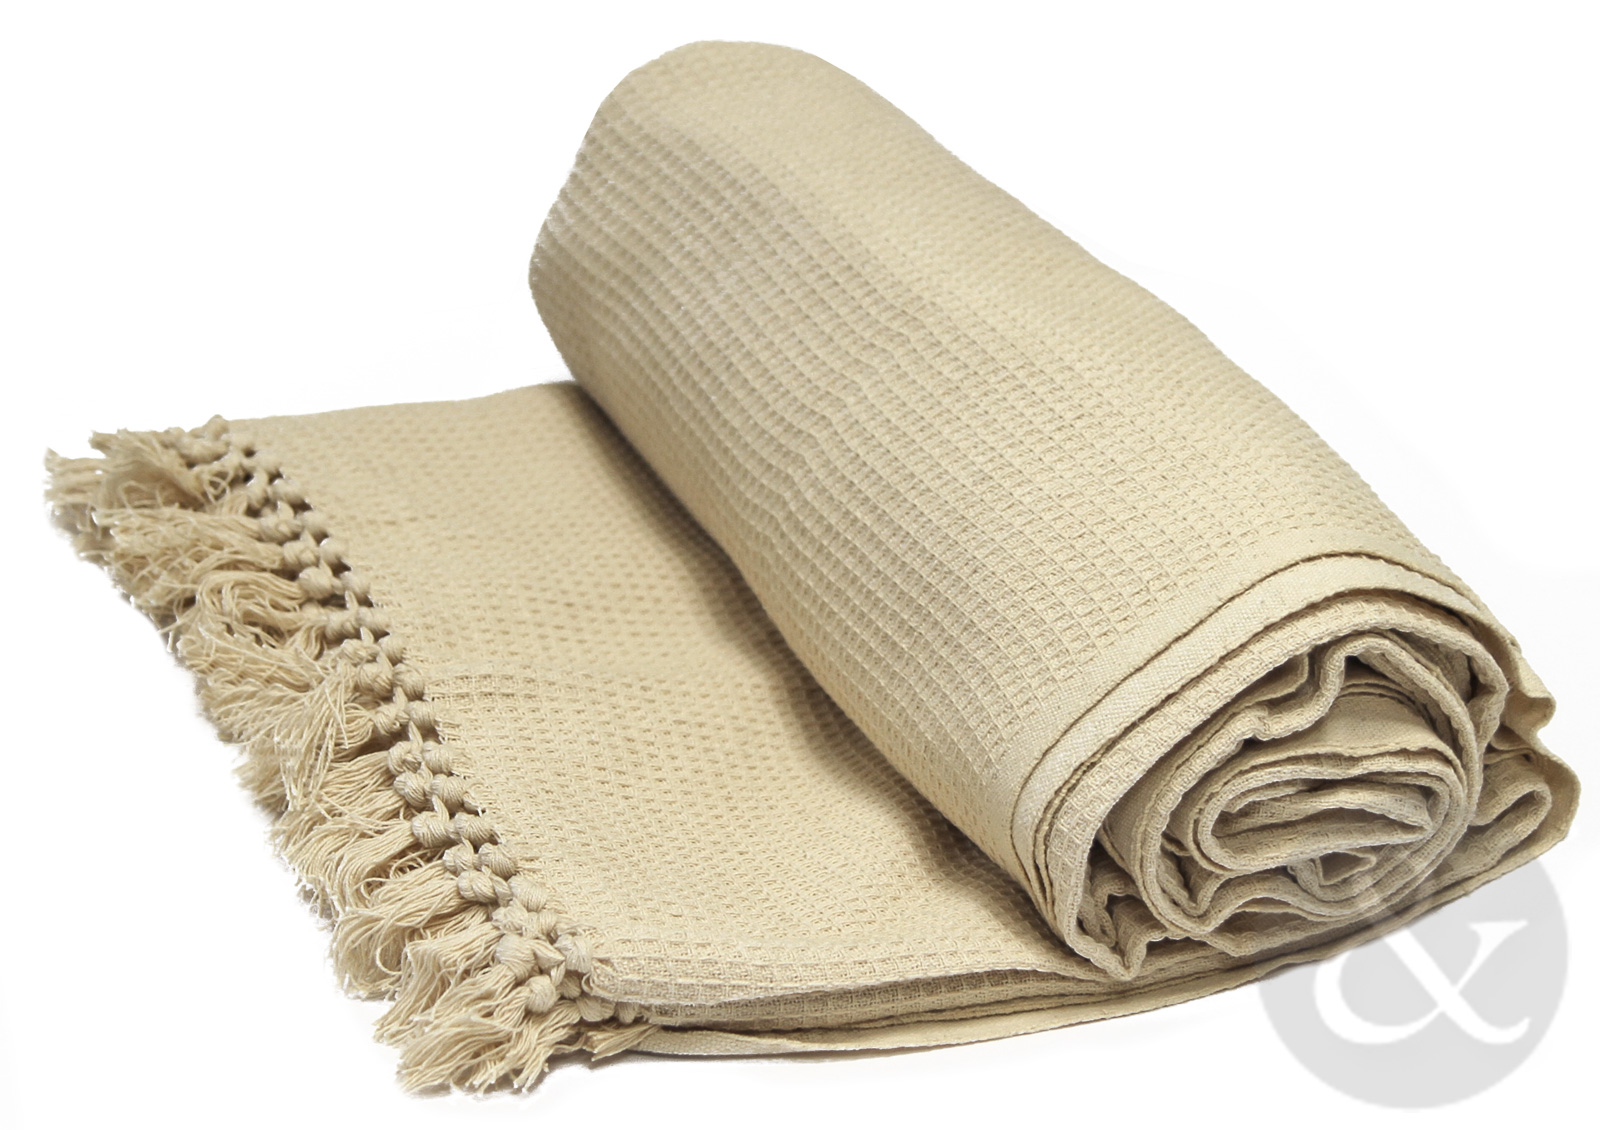 Soft 100% Cotton Honey Comb Throw With Tasselled Edge